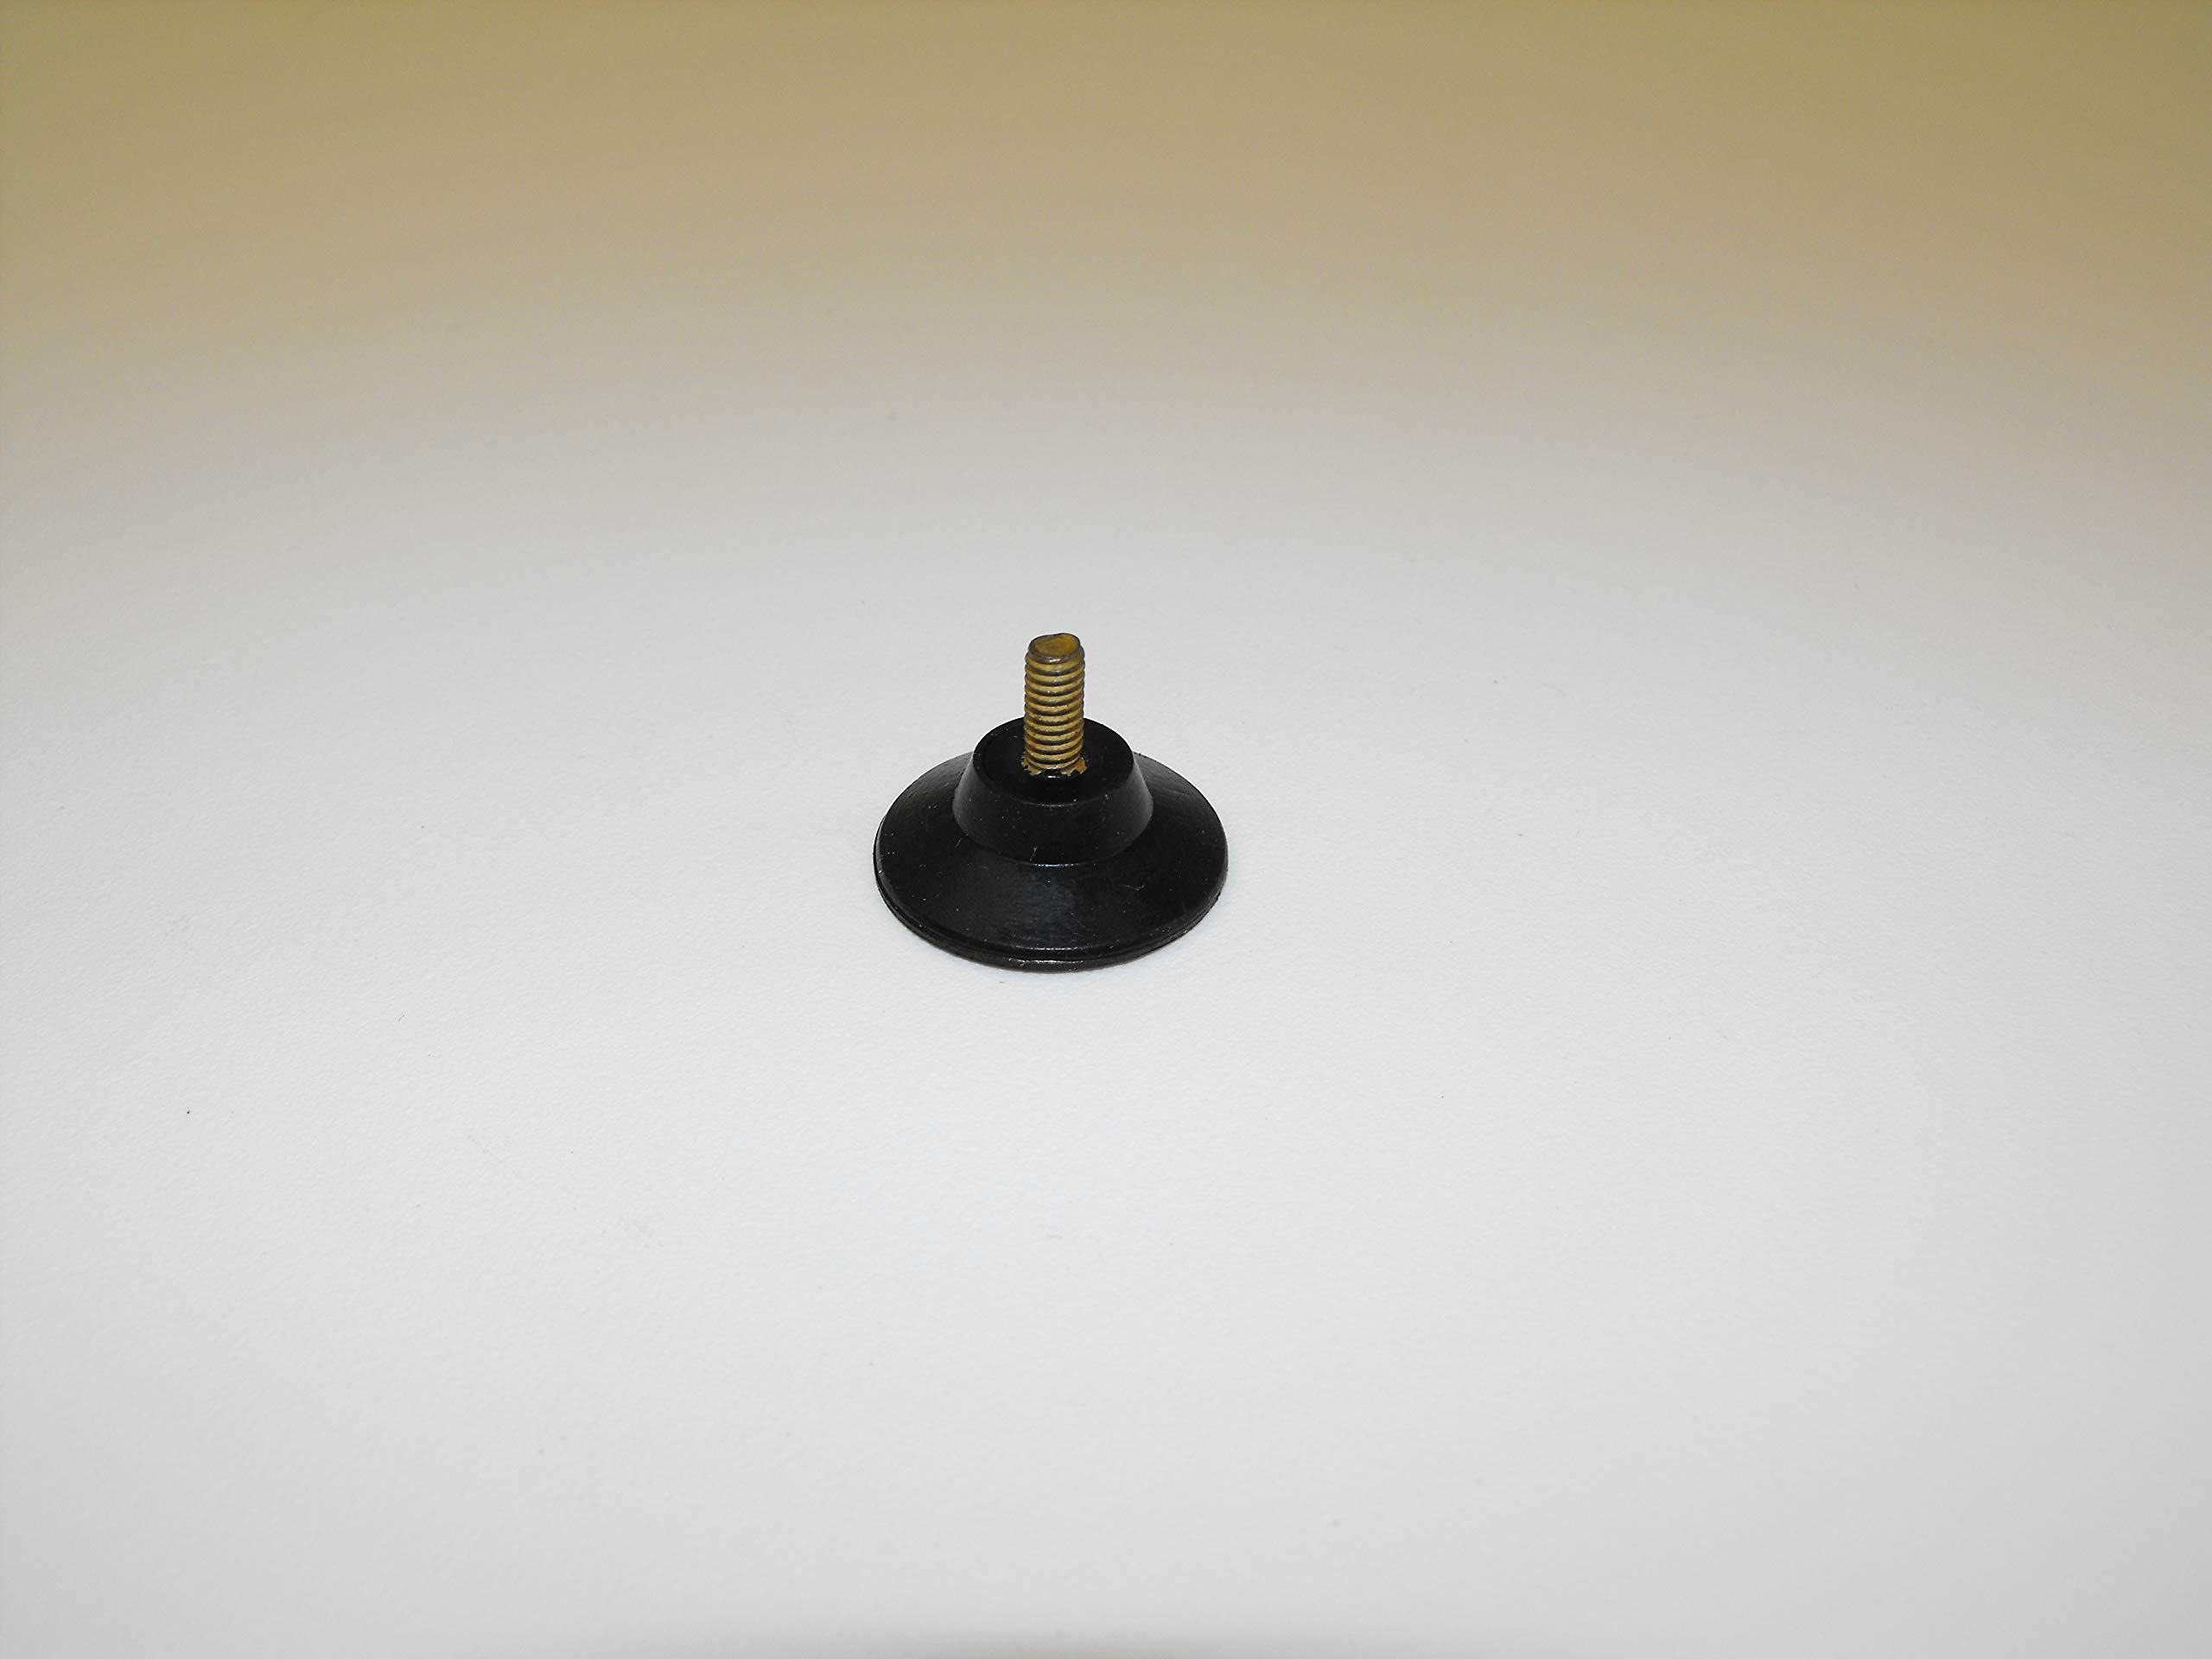 JL Missouri Parts 3/8'' #8-32 Screw in 1'' Rubber Suction Cup, 5/16'' Tall, Made in USA High Foot by JL Missouri Parts (Image #3)